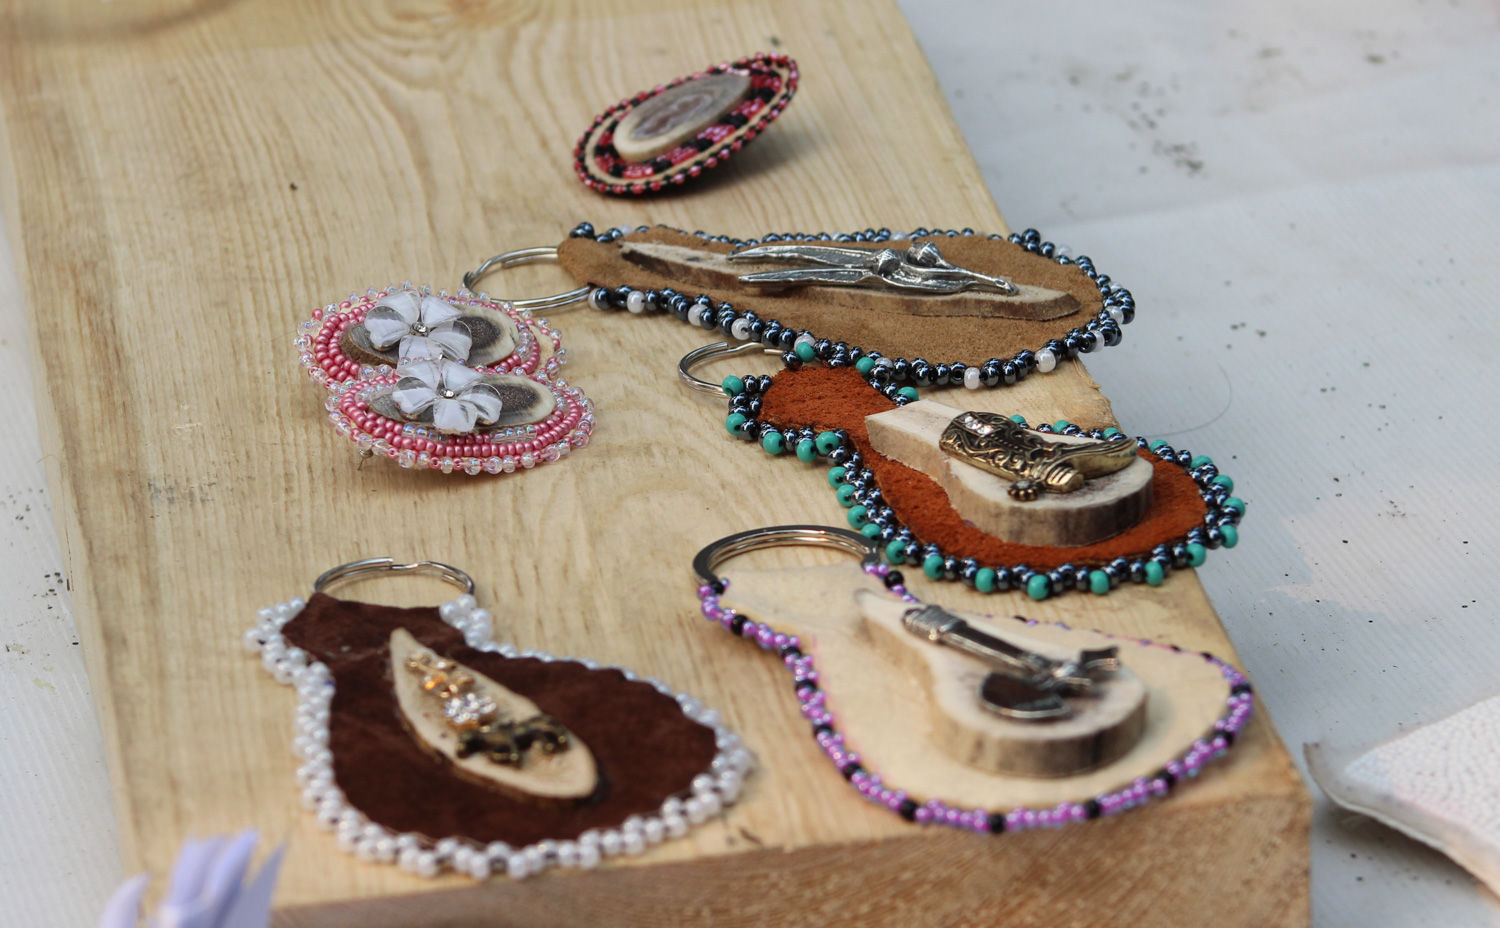 These keychains and jewelry pieces are made from caribou hide and antlers. (Photo: Sarah Sibley)